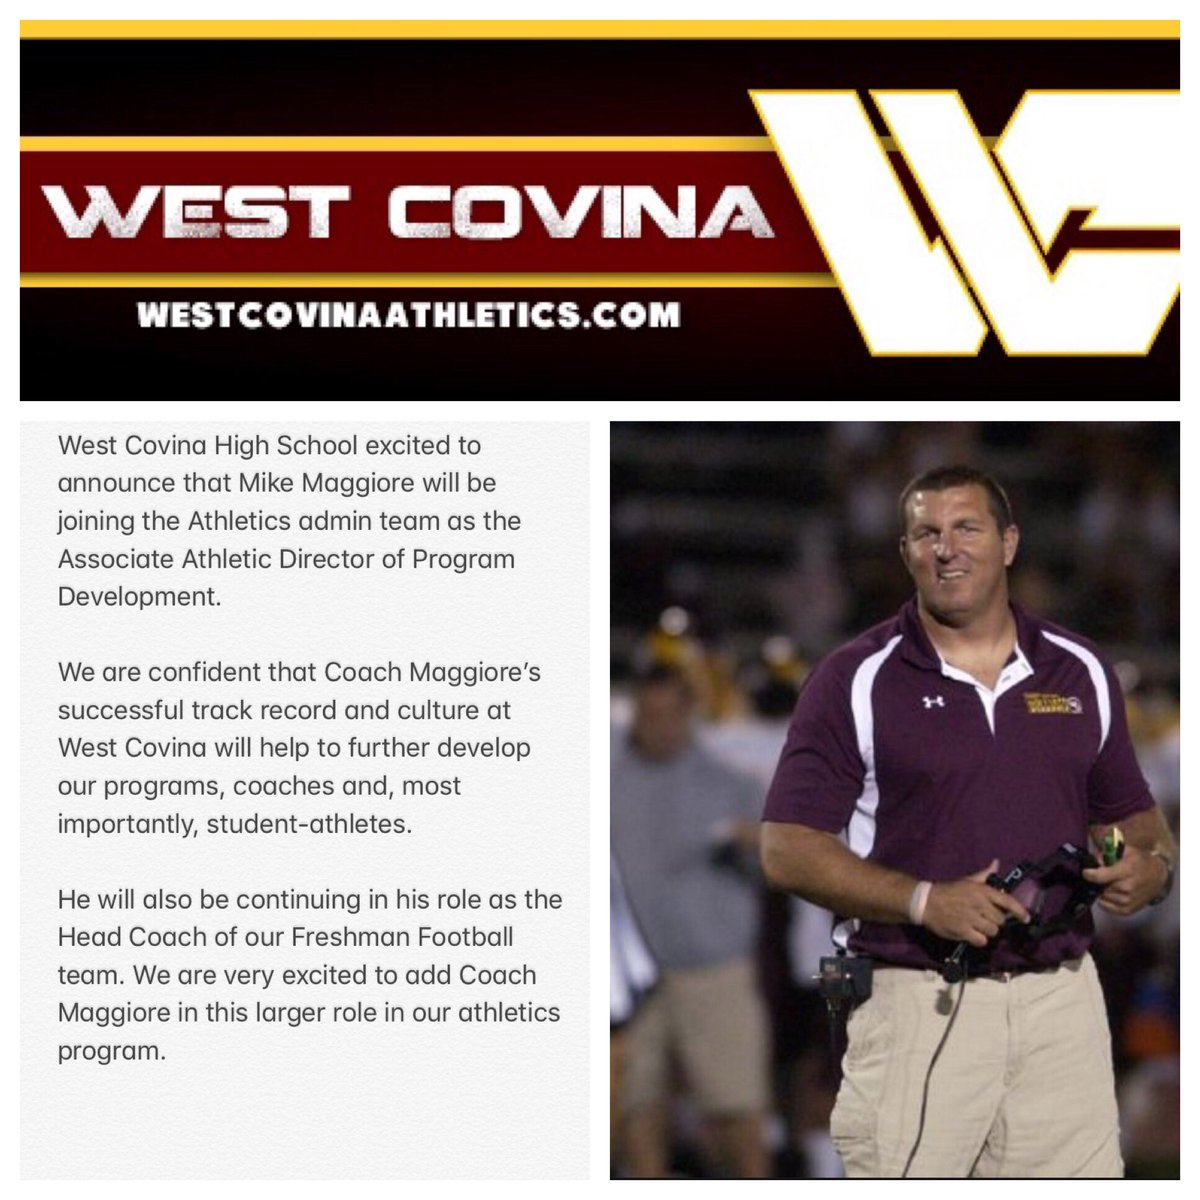 West Covina Sports on Twitter: